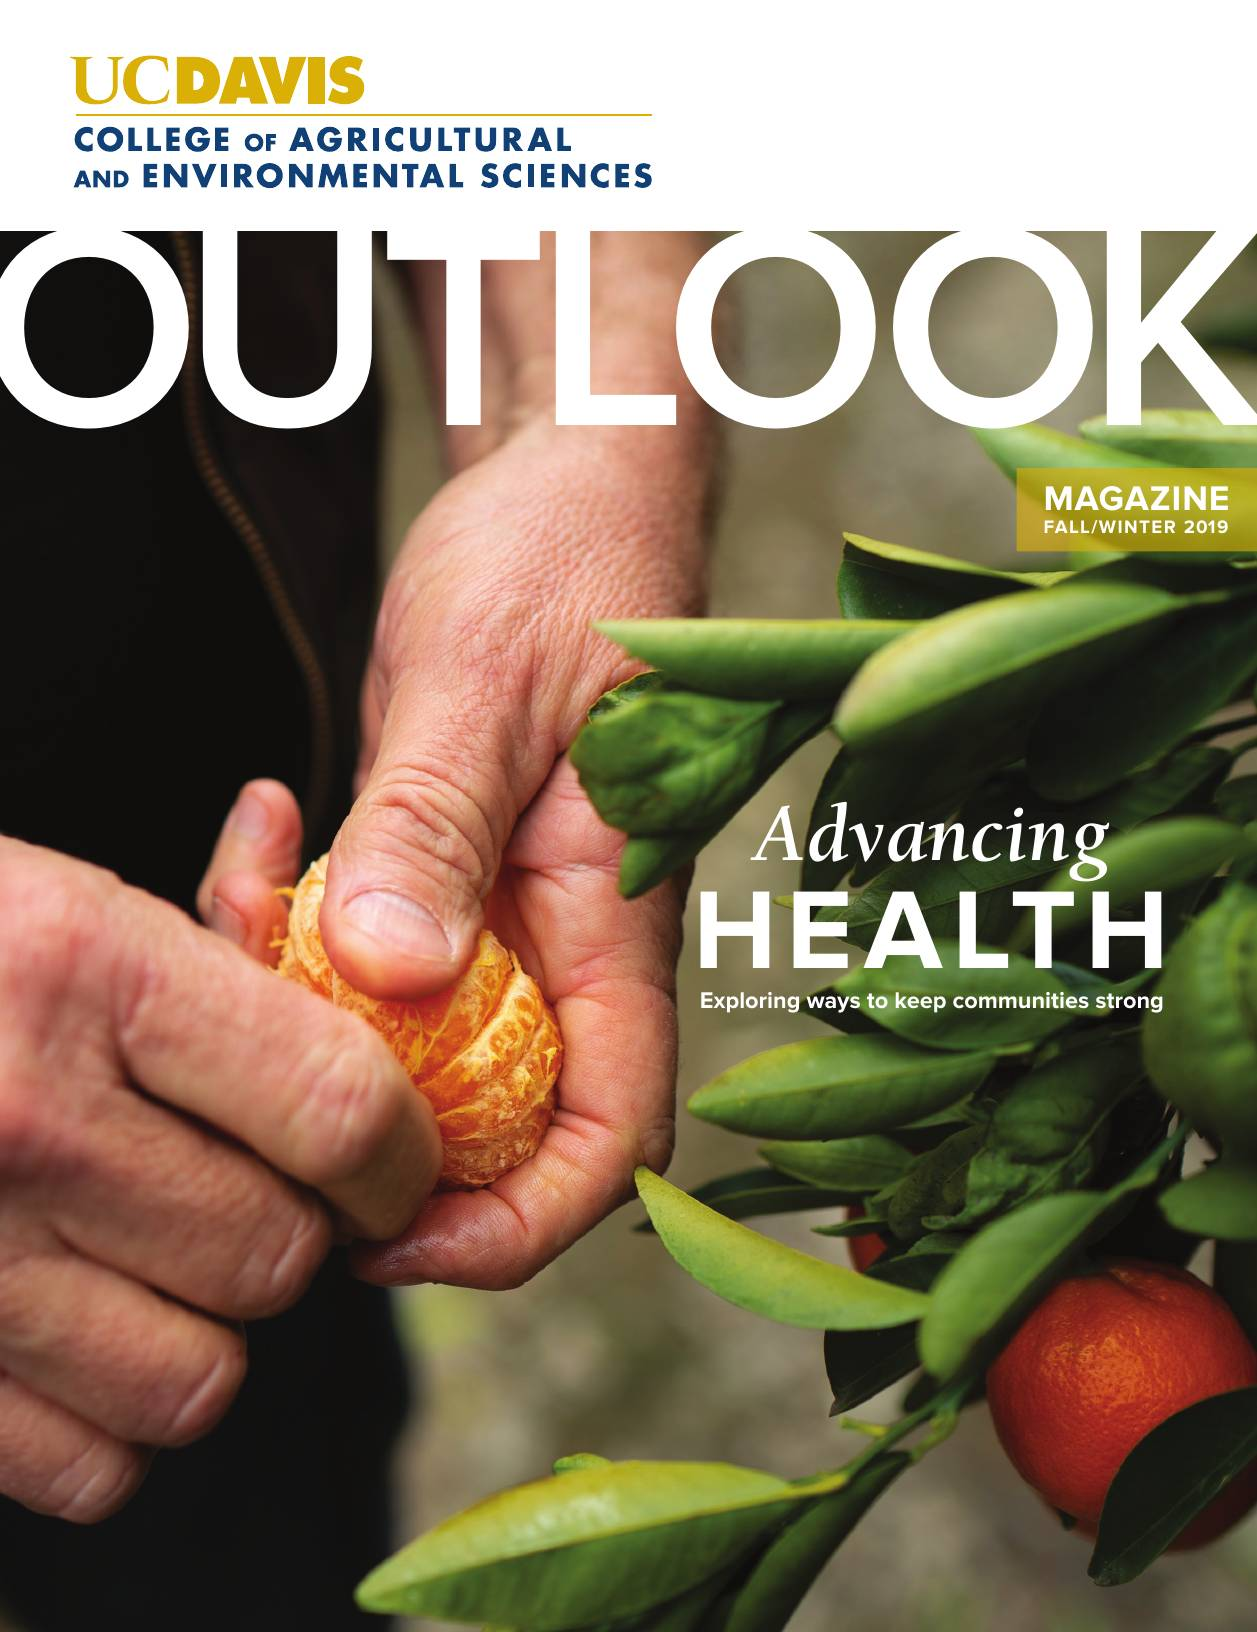 Cover of the Outlook Fall/Winter 2019